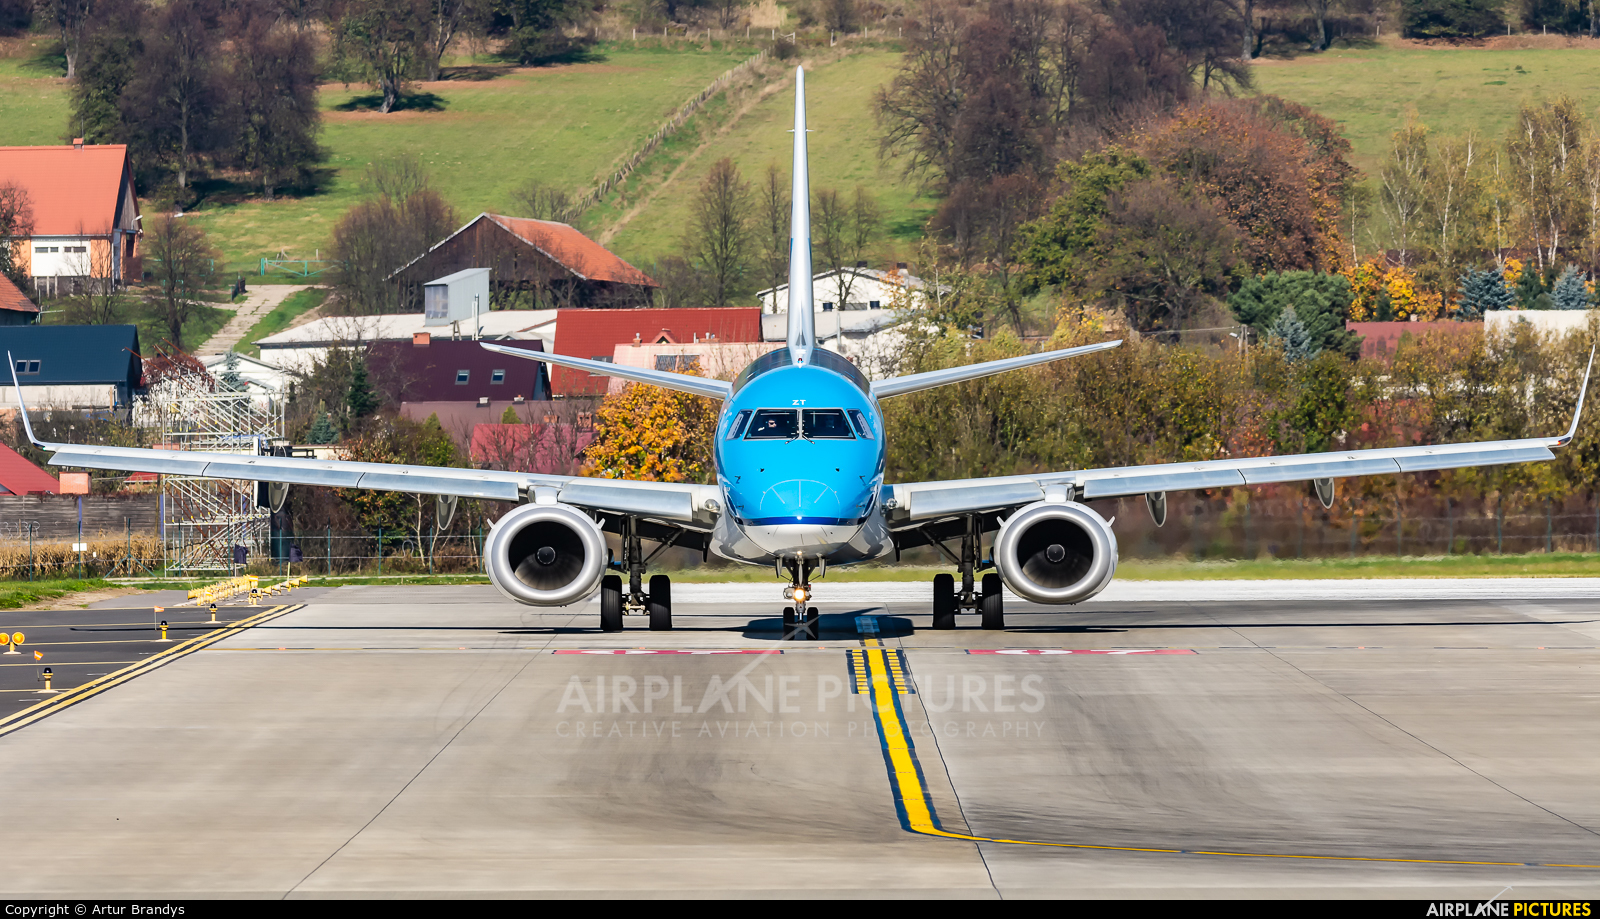 KLM Cityhopper PH-EZT aircraft at Kraków - John Paul II Intl